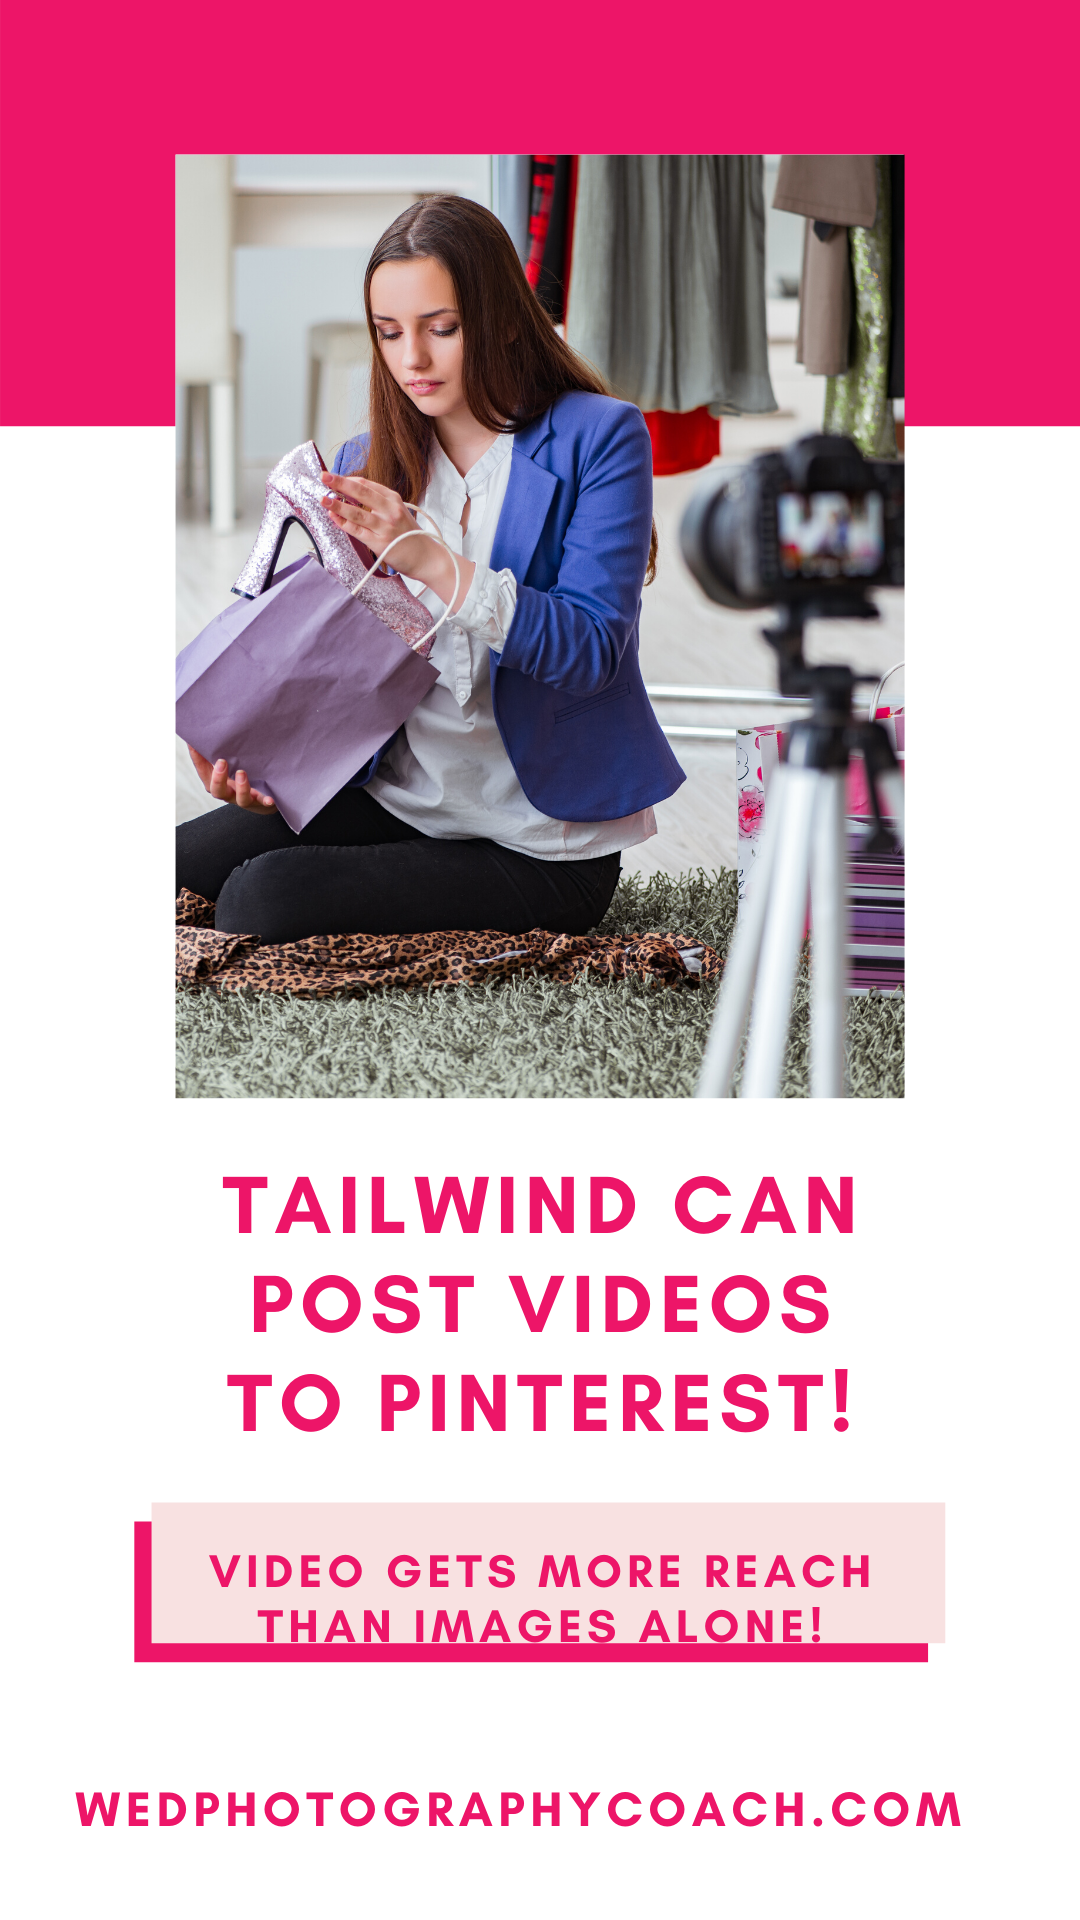 You can post videos with Tailwind!